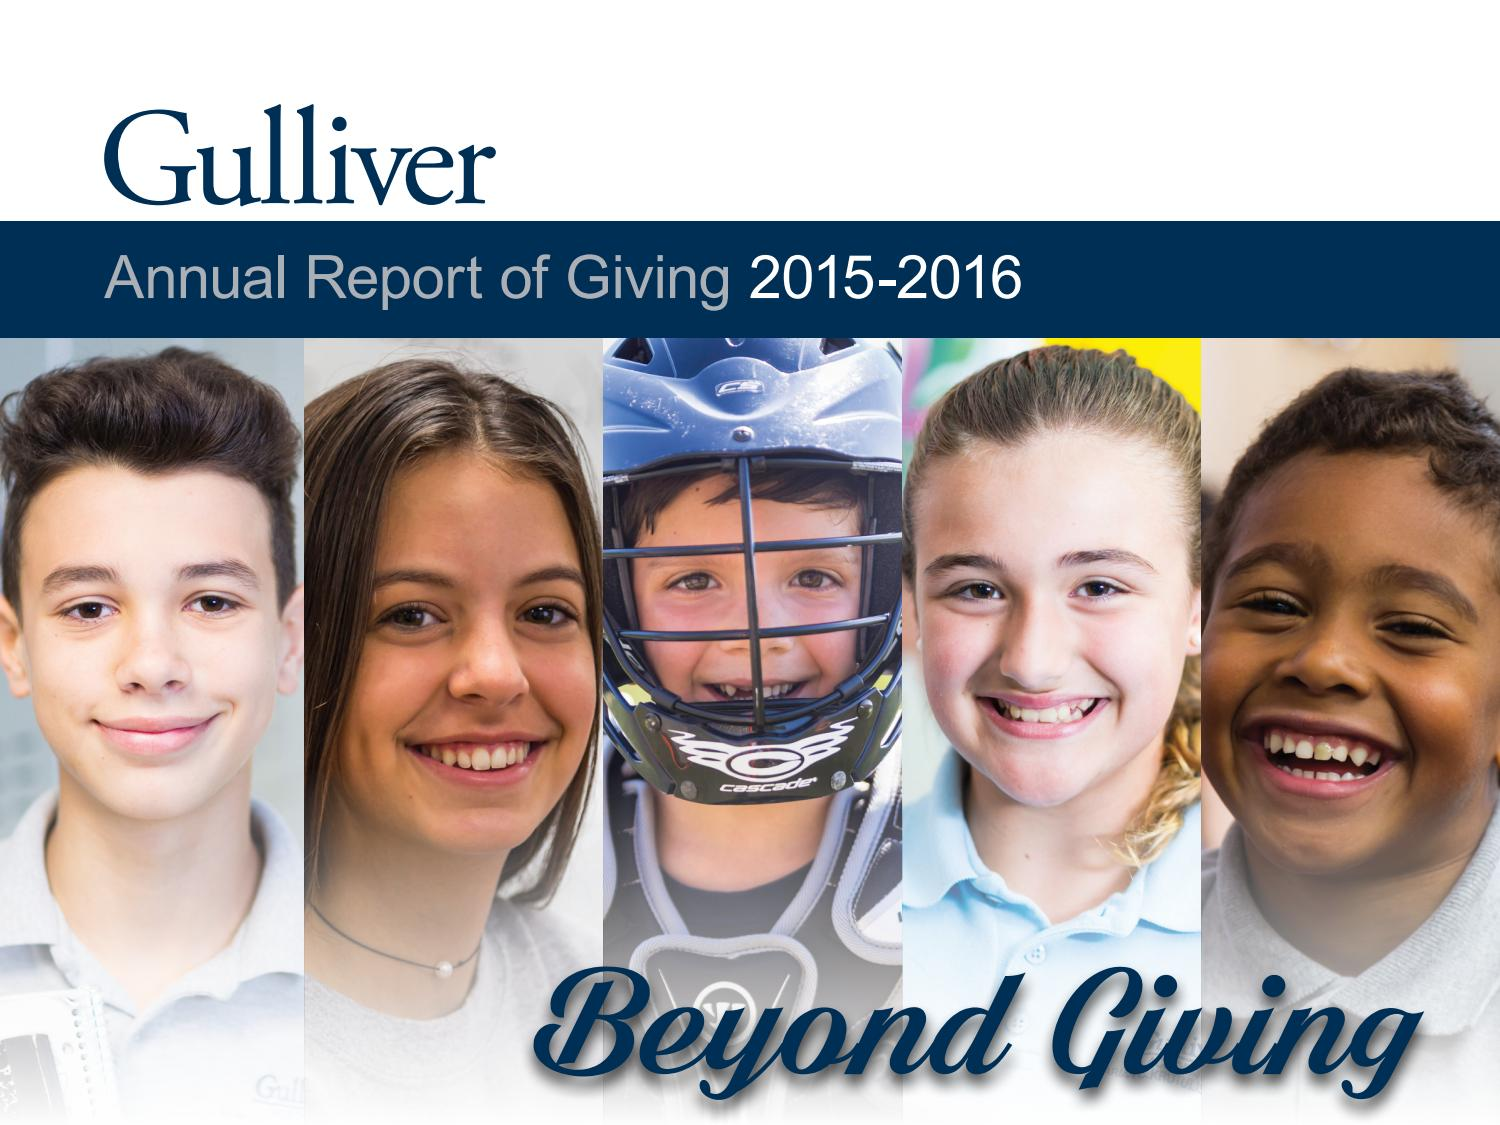 e0f0c65220 Gulliver Annual Report of Giving 2015-16 by Gulliver Schools - issuu